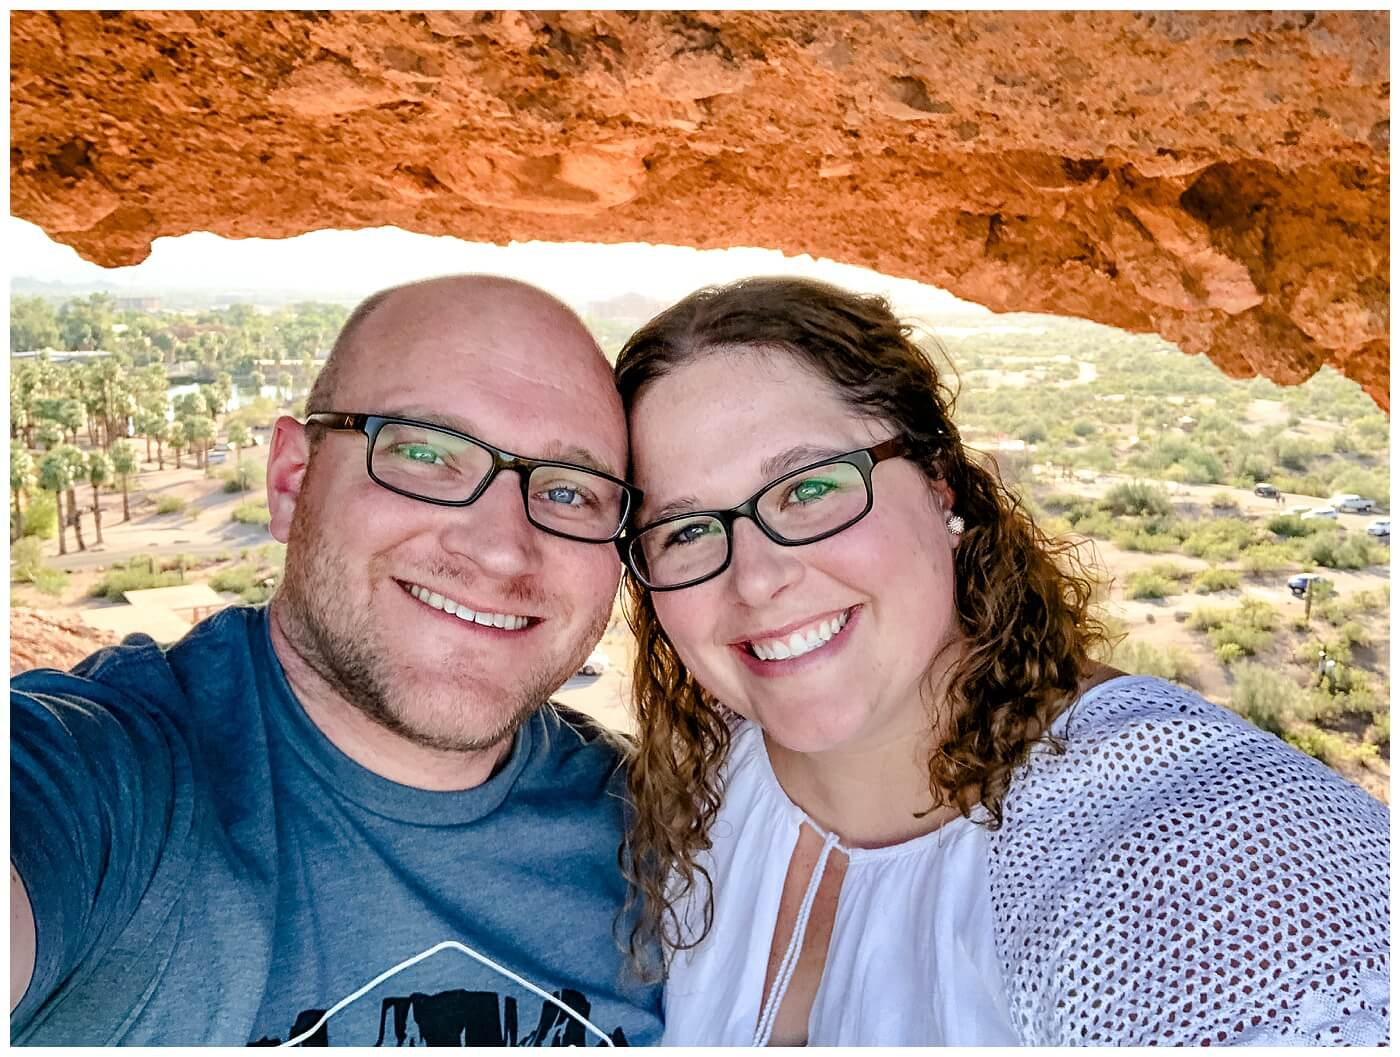 3 Tips to a Healthier Marriage - Selfie in Arizona